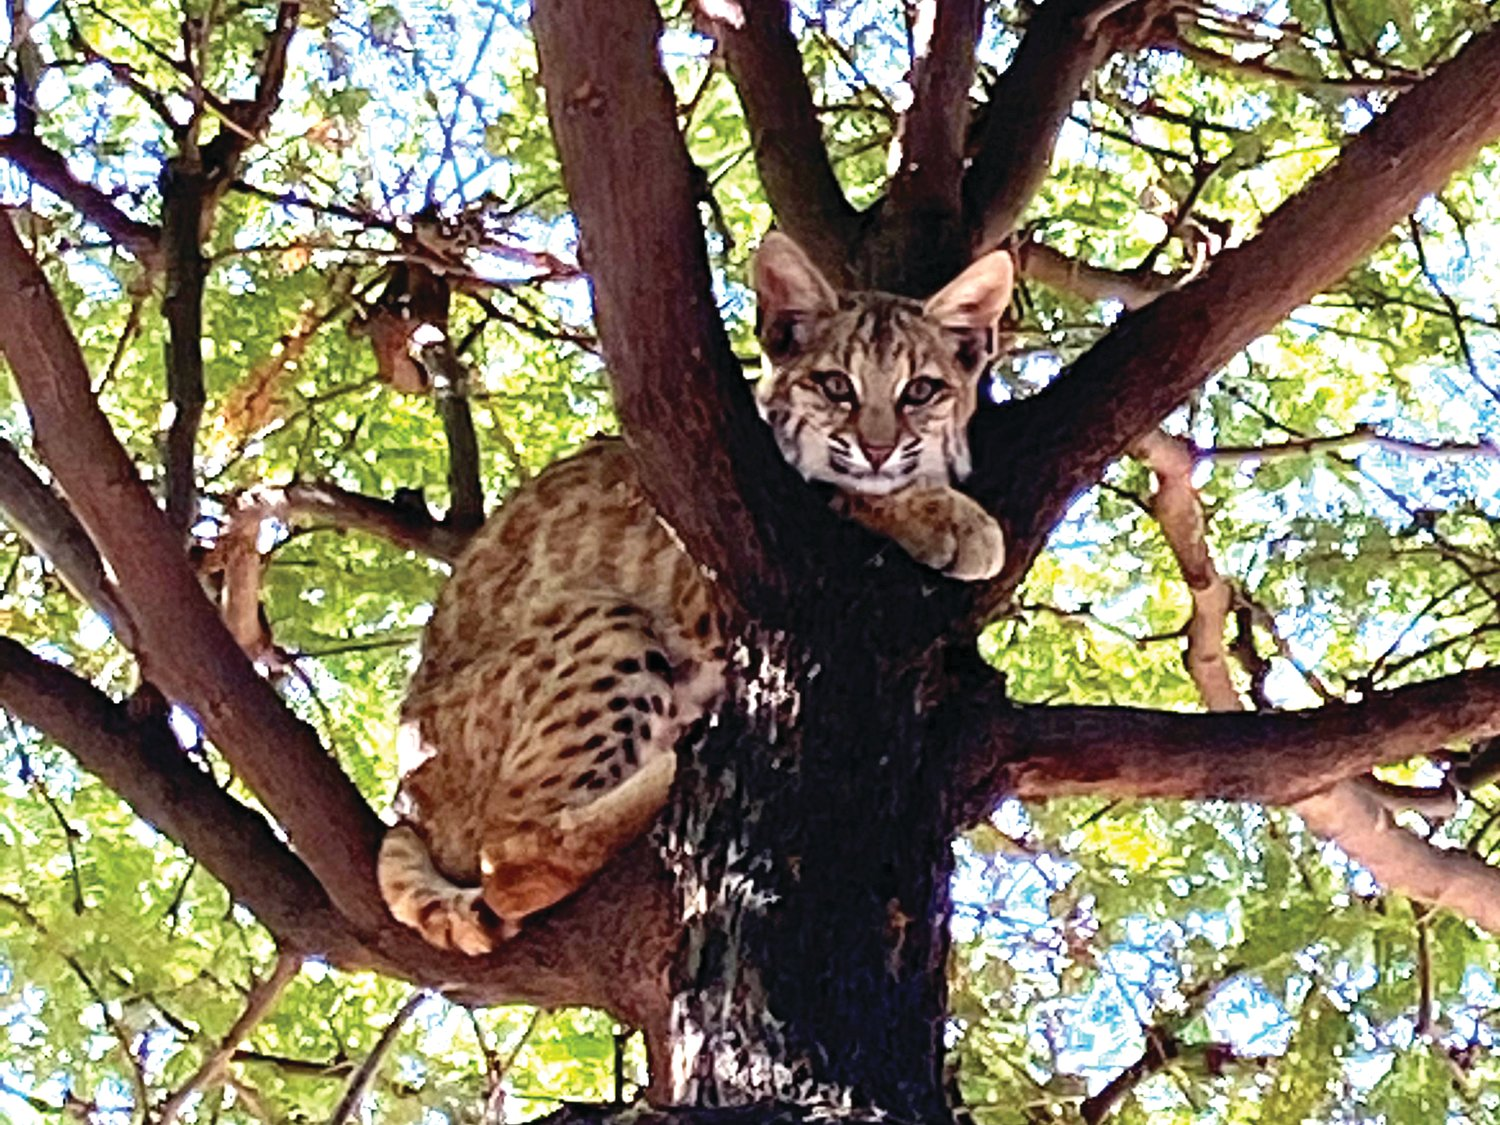 A bobcat climbed the tree on Horizon Drive in Sun City West.